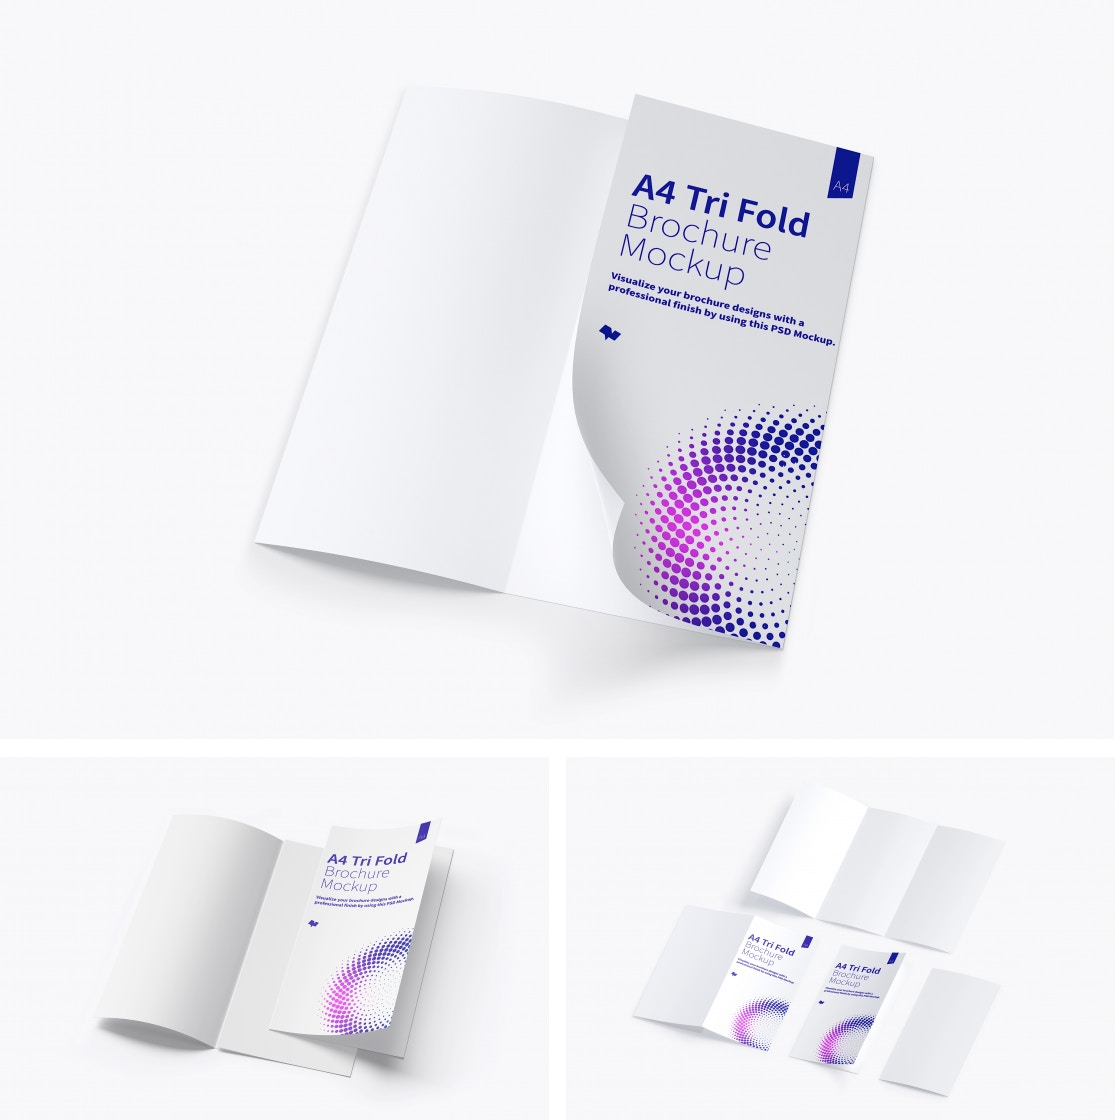 A4 Trifold Brochure Mockups Poster